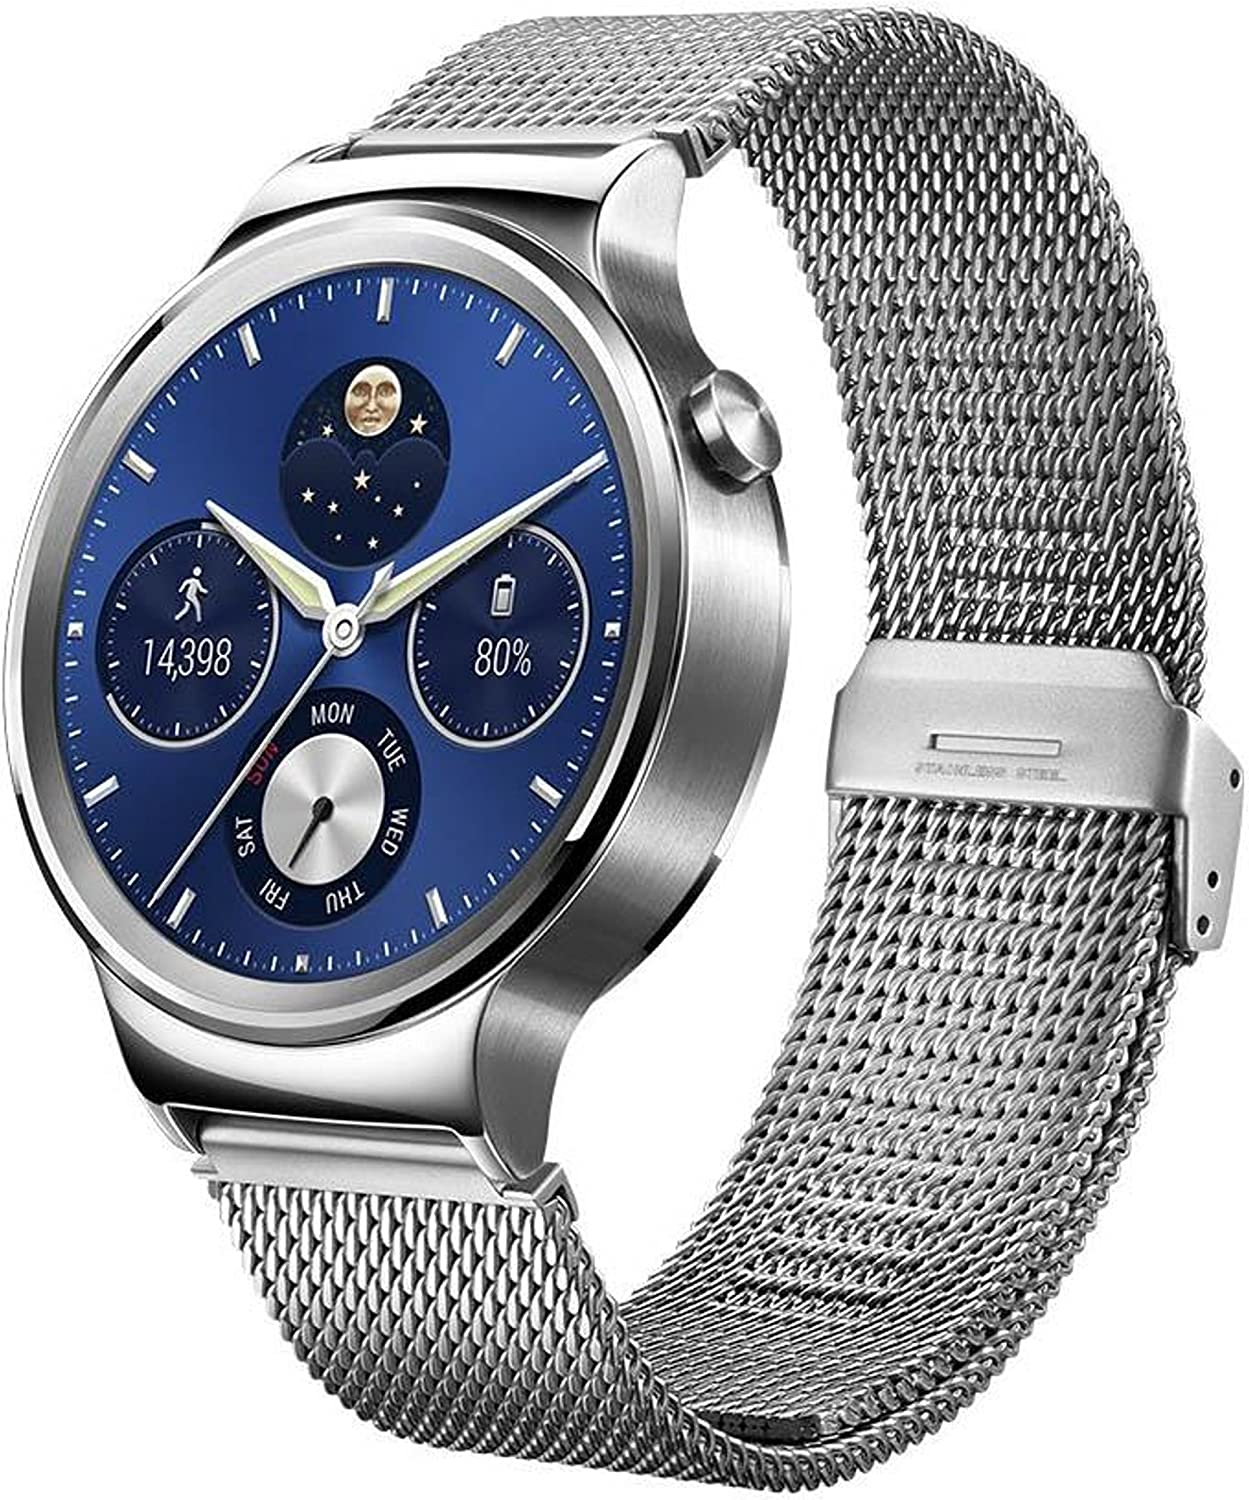 Huawei Watch Stainless Steel with Stainless Steel Mesh Band (US Warranty)